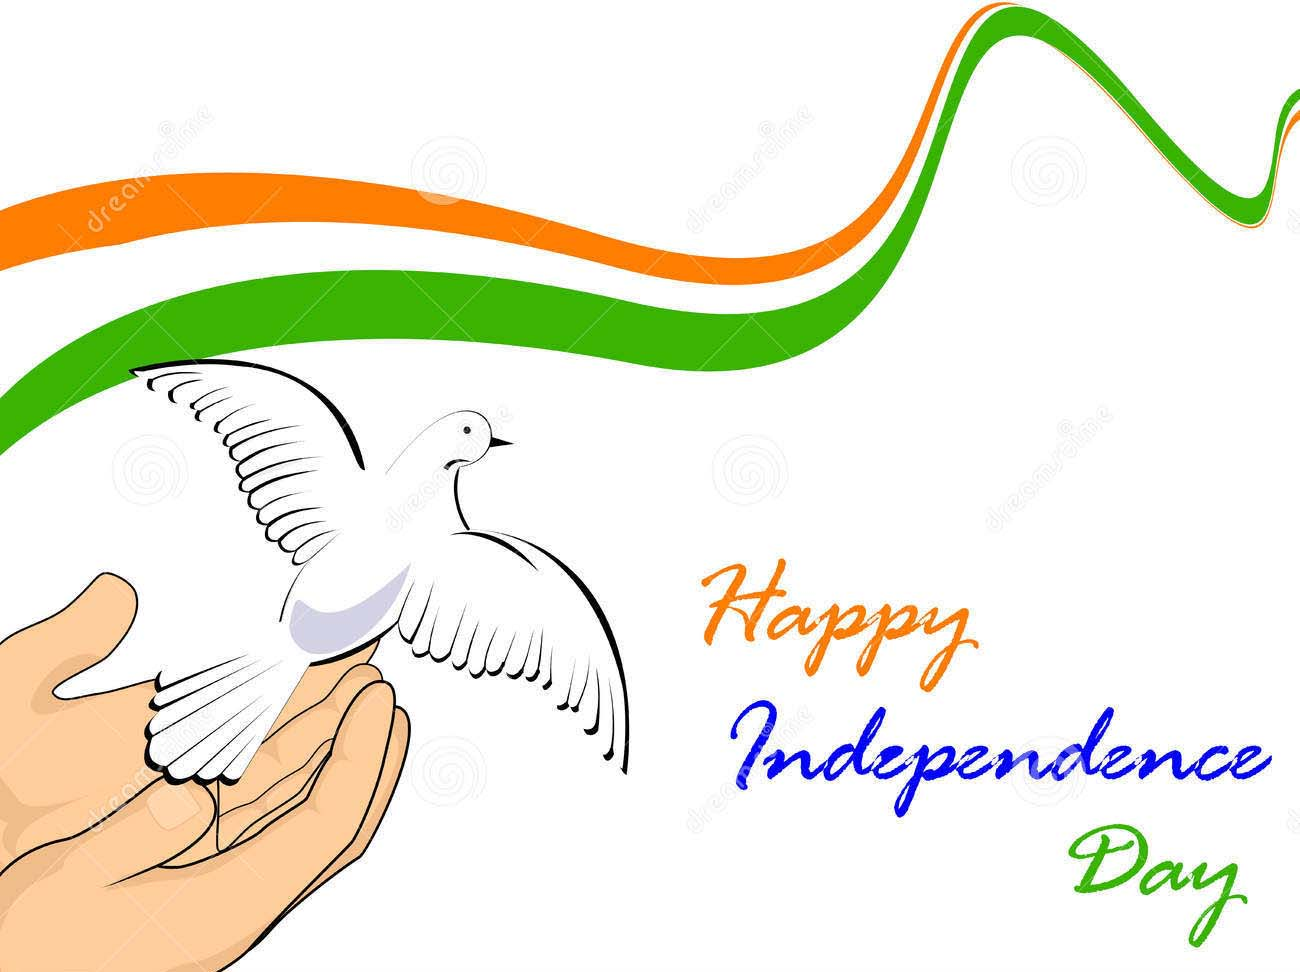 Happy Independence Day Images Wishes 2017 Happy Independence Day